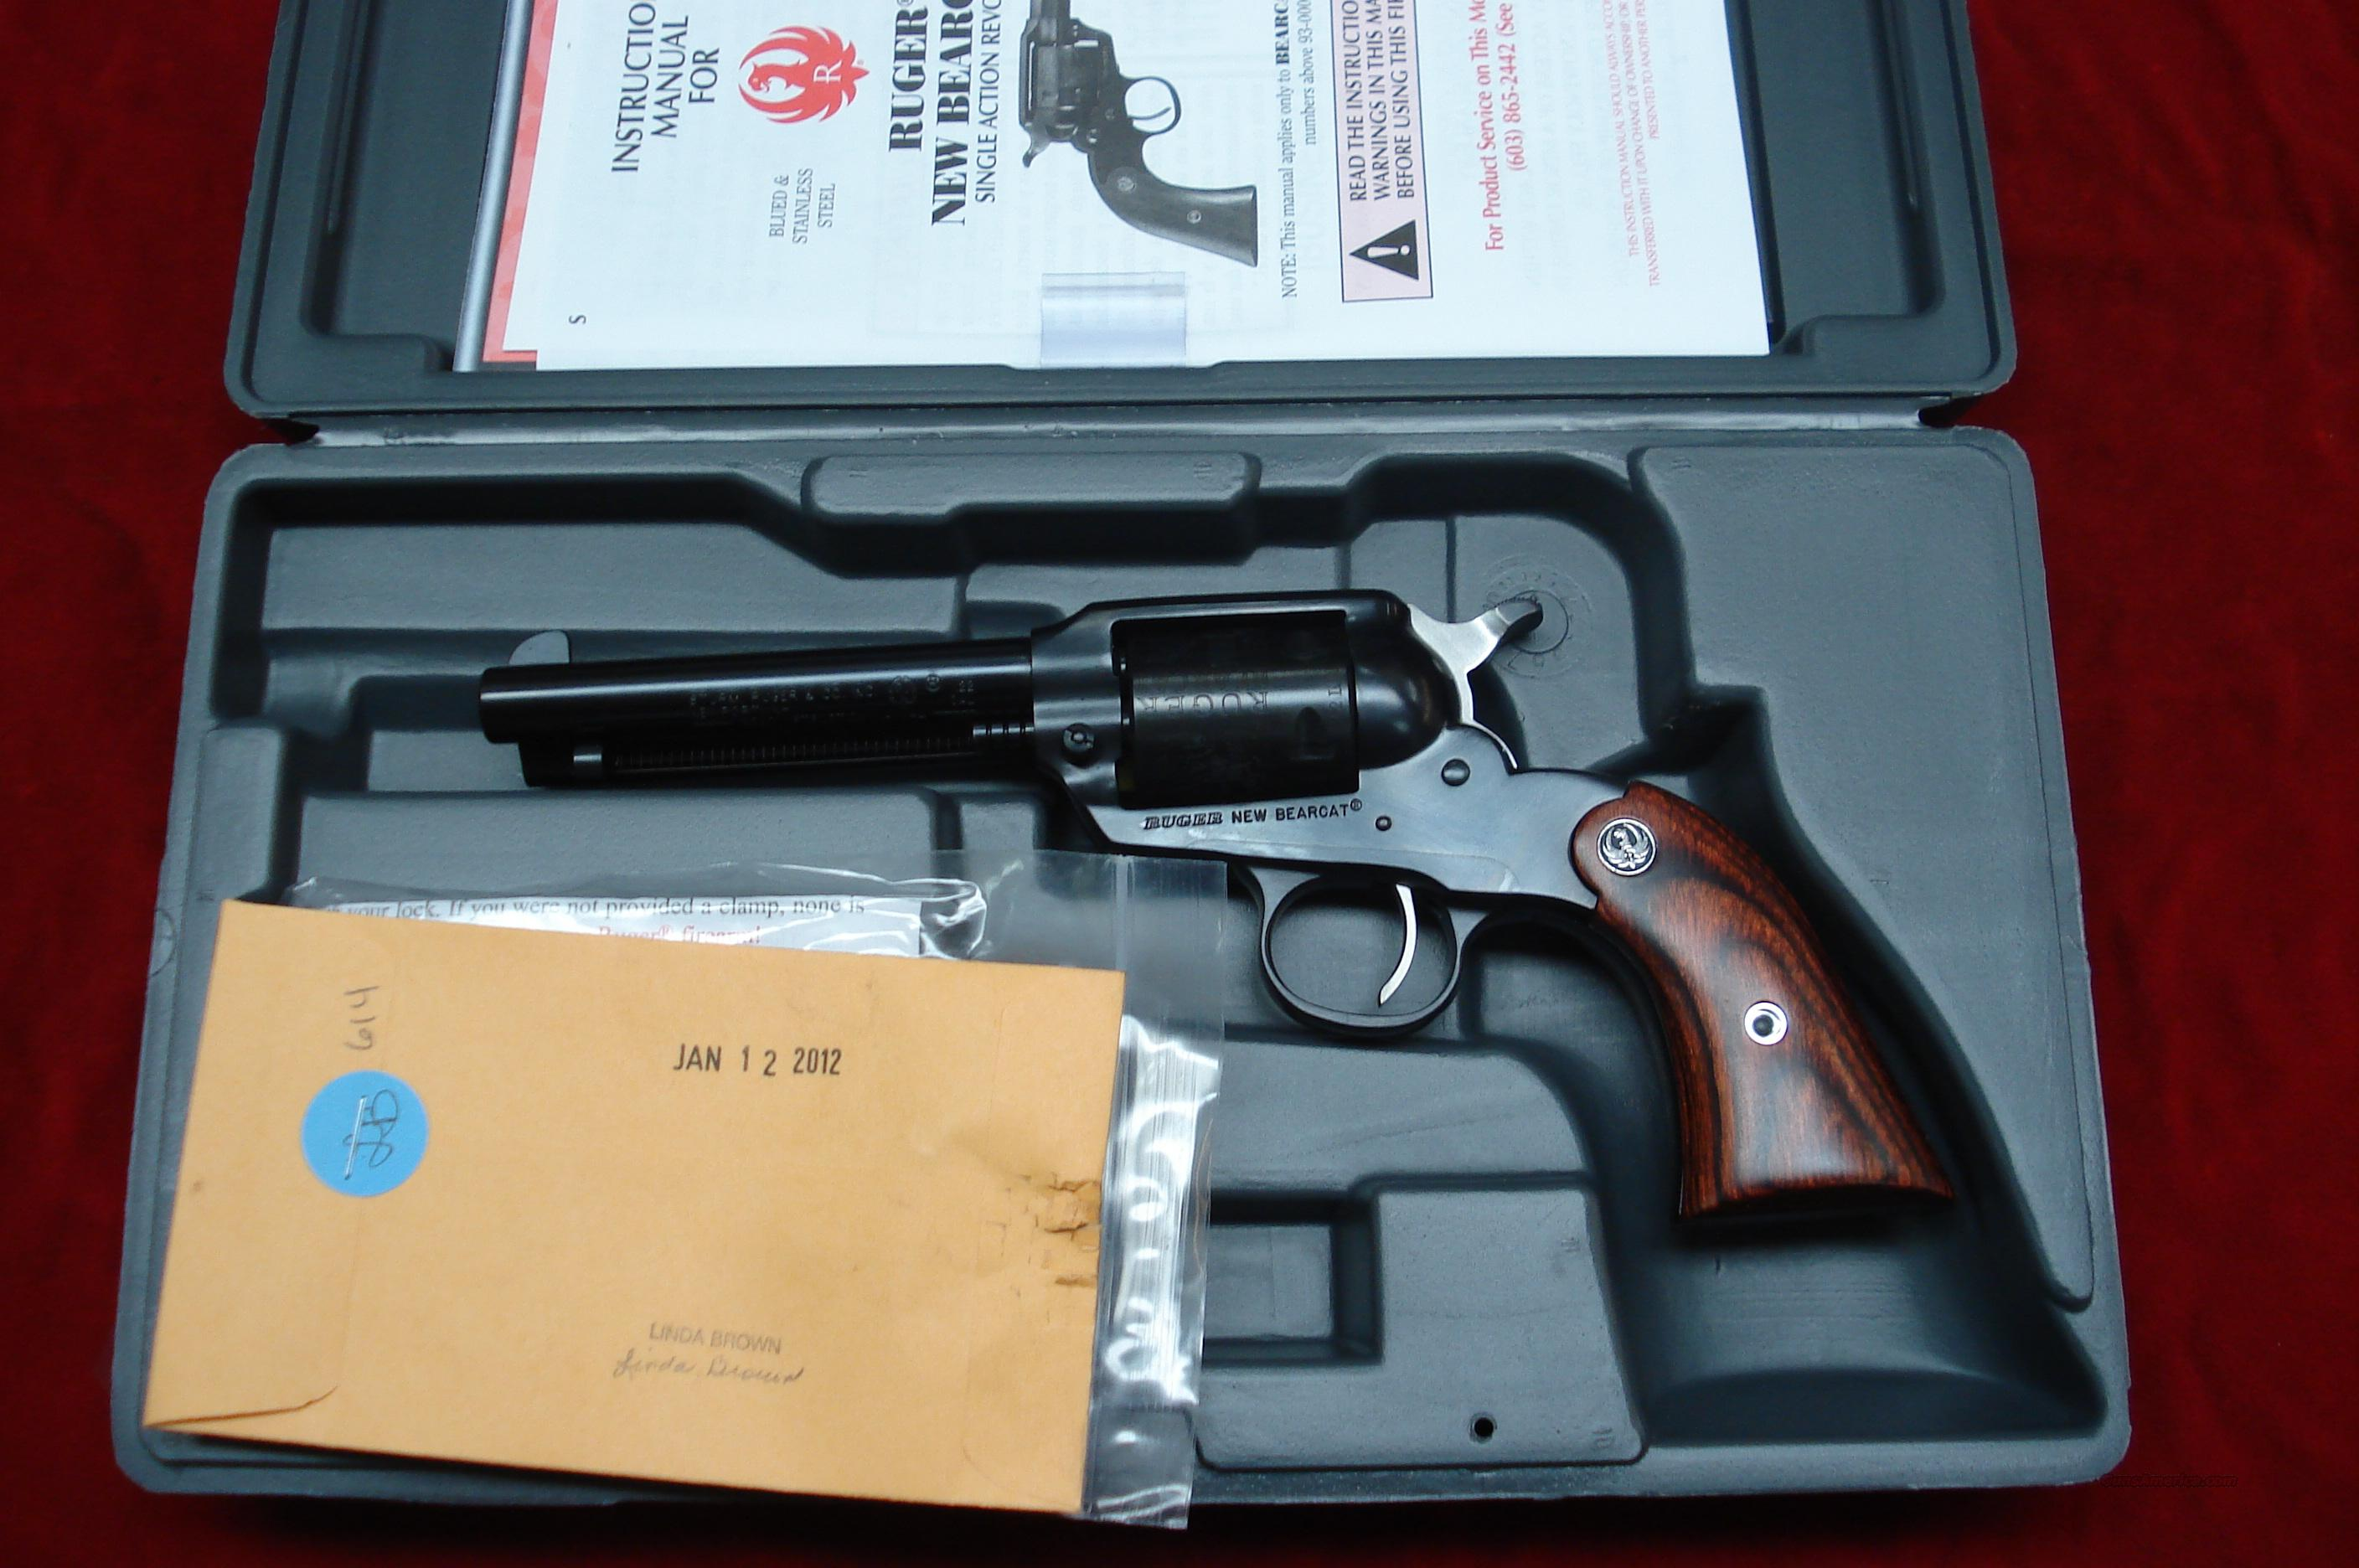 RUGER BEARCAT 22CAL. BLUE NEW (SBC-4)  (00912)  Guns > Pistols > Ruger Single Action Revolvers > Single Six Type